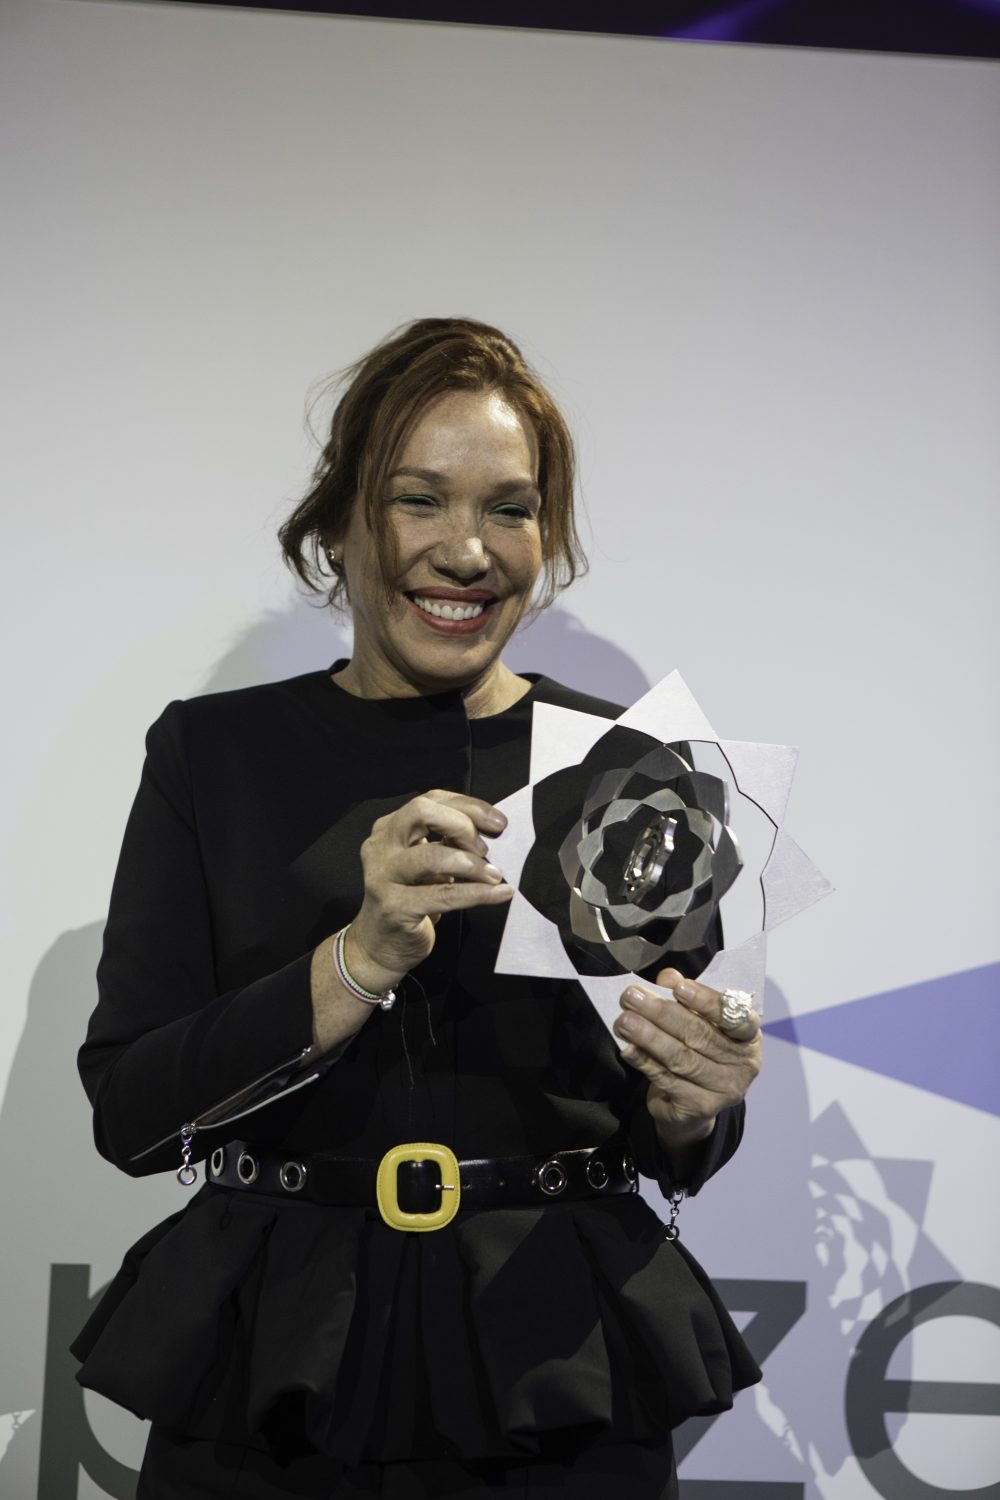 Chef Colombiana Leonor Espinosa riceve il Basque Culinary World Prize 2017